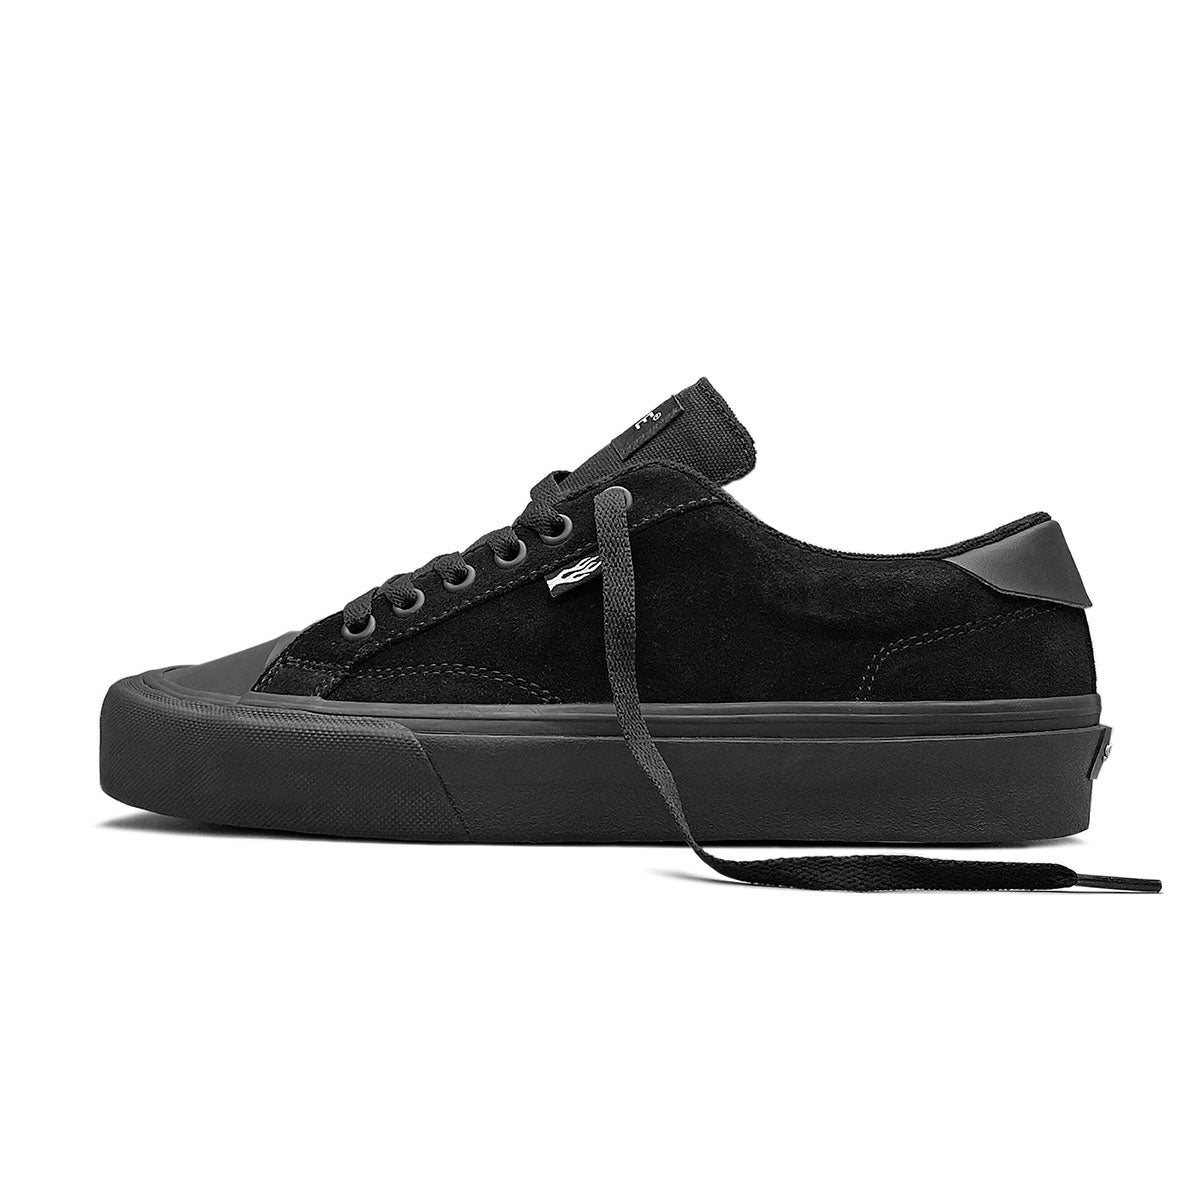 STANLEY - TRIPLE BLACK SUEDE